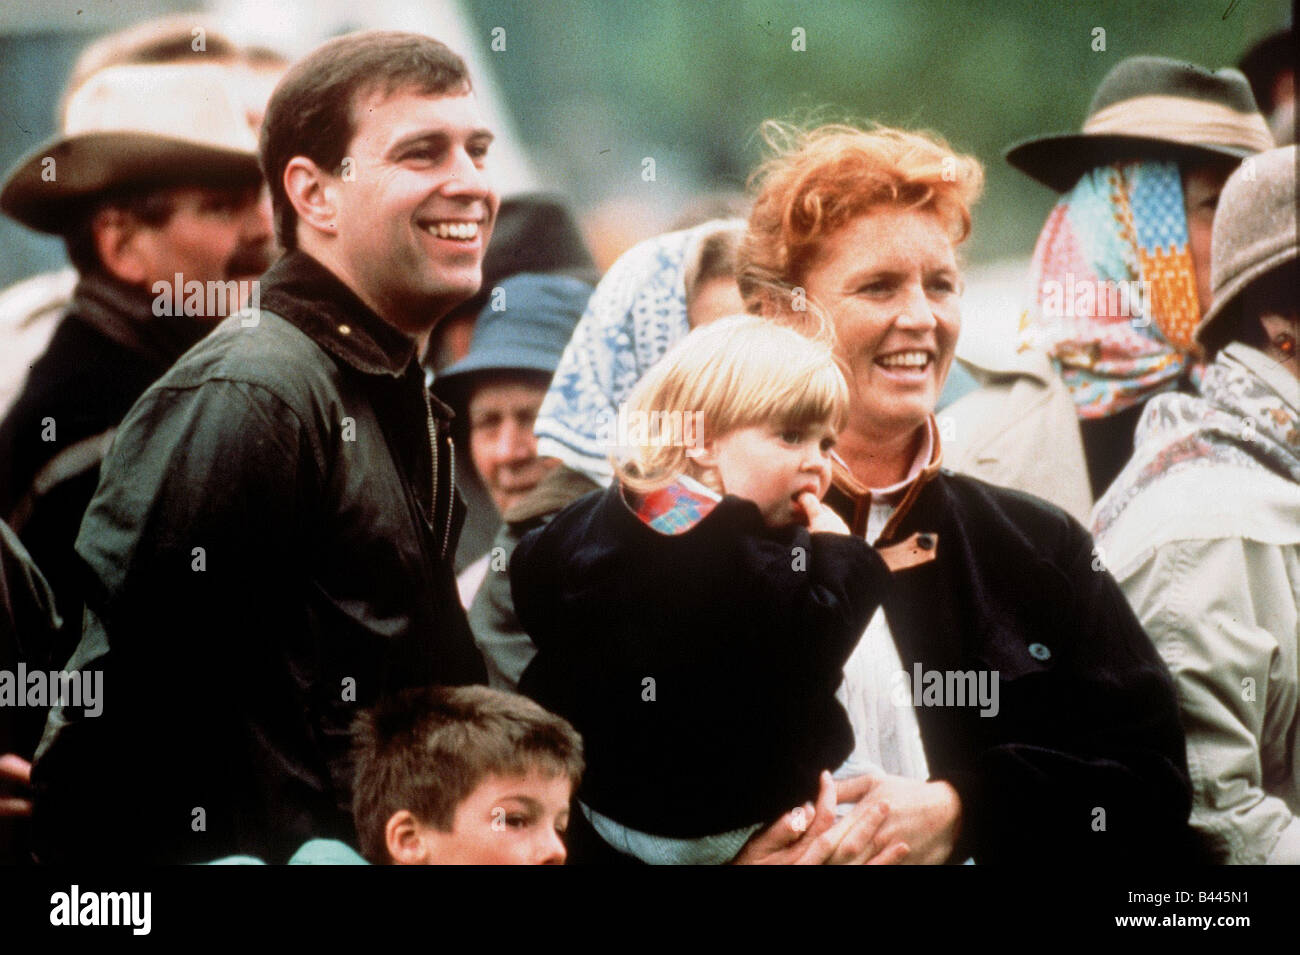 Prince Andrew With Fergie And Their Daughter Princess Beatrice